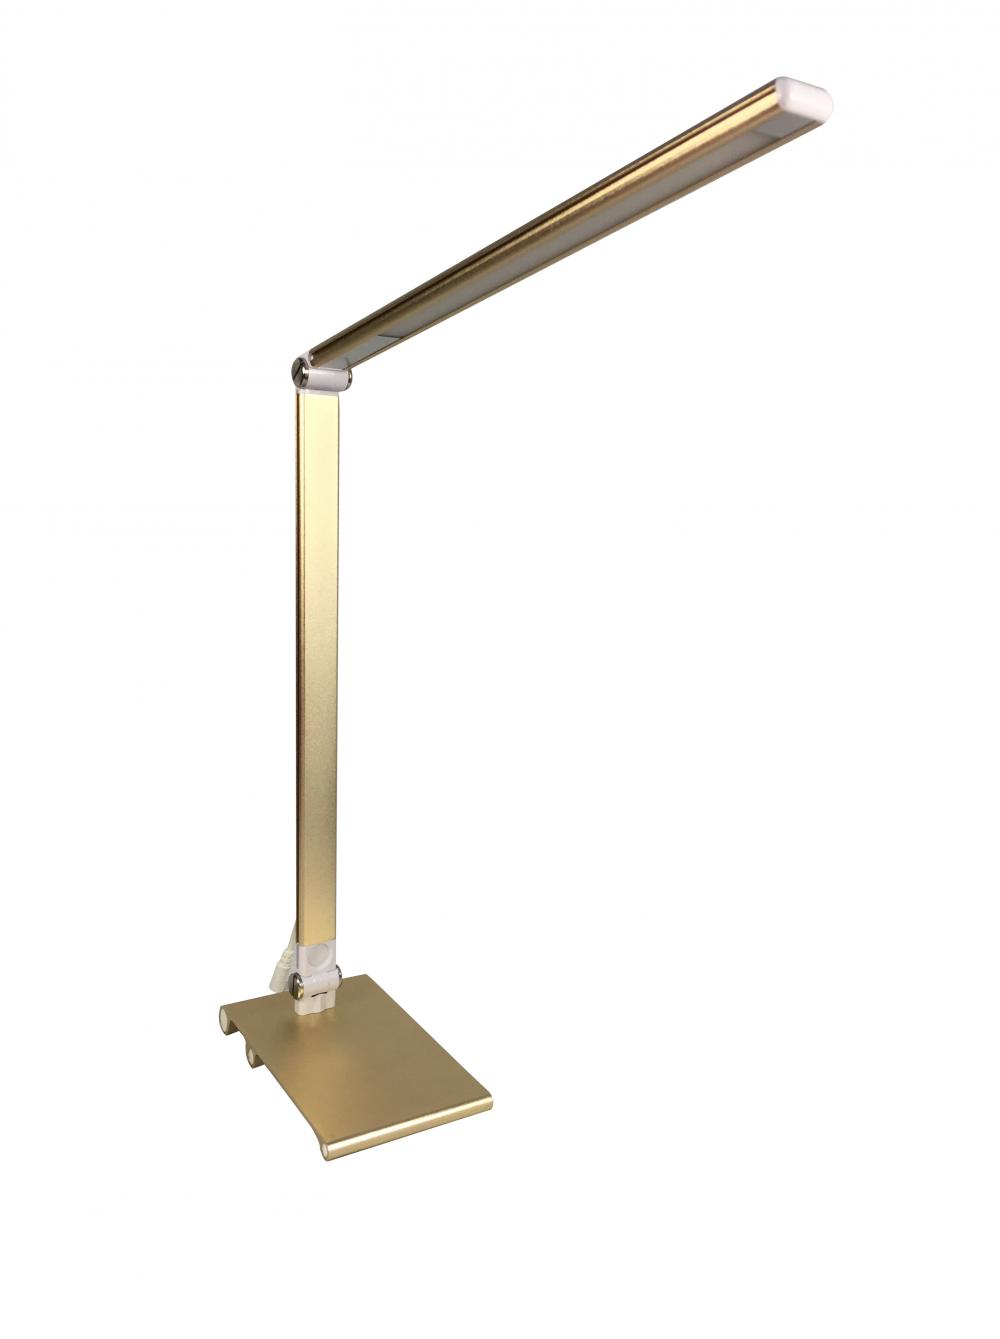 Golden Color Anodizing Aluminum Desk Lamp Metallic Sense